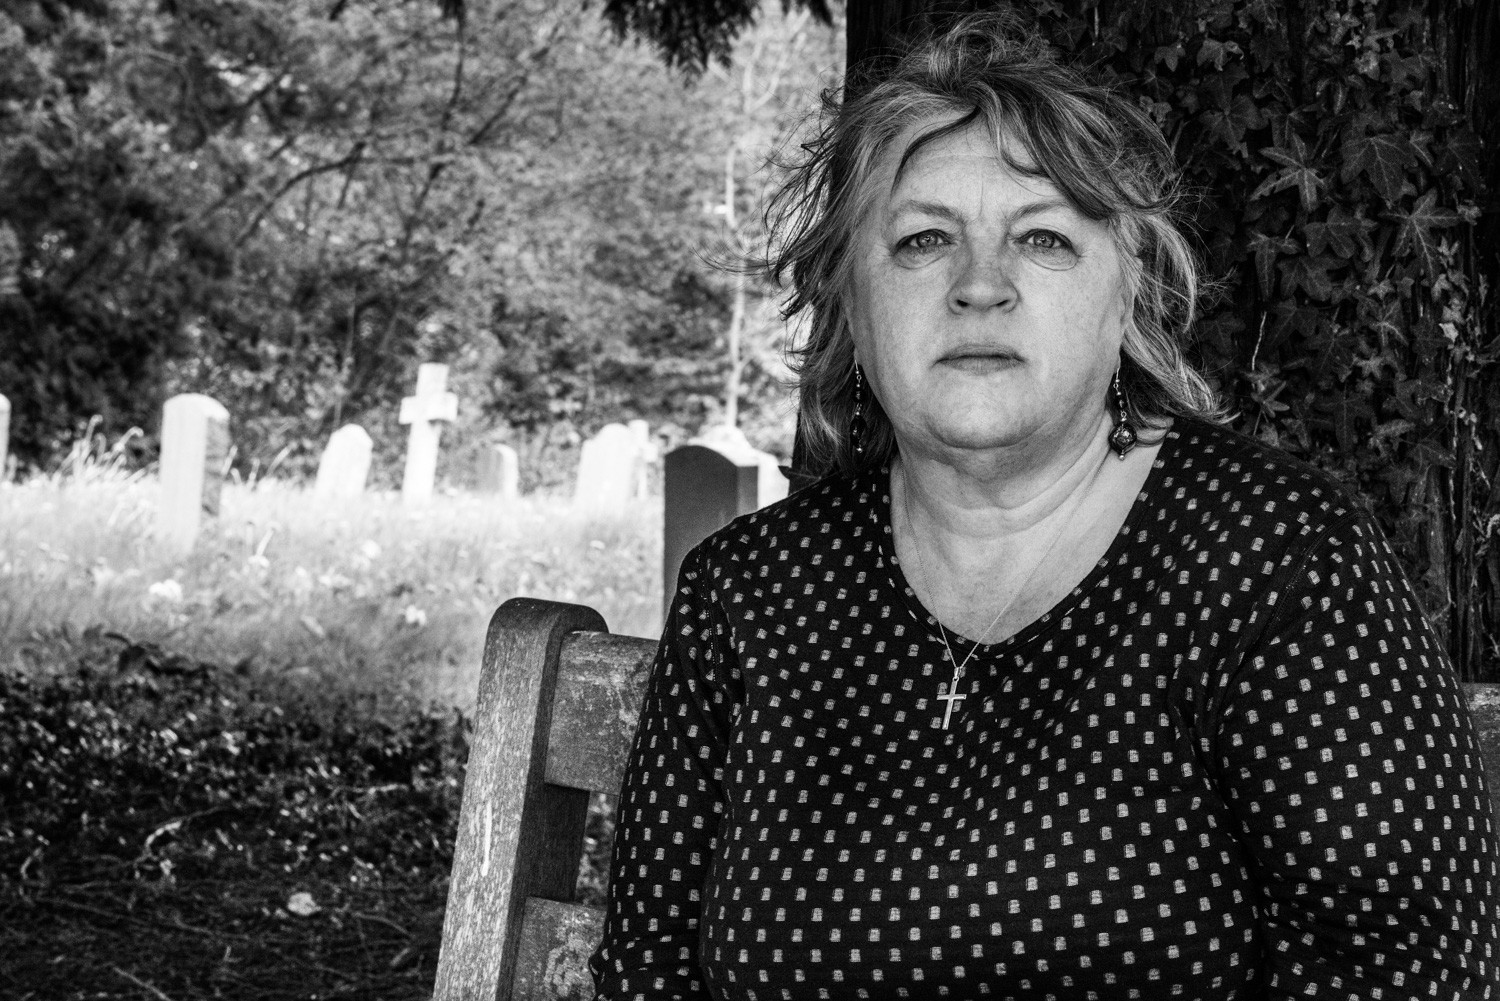 David Goldblatt, Lucy Charman at the village cemetery where her grandparents, father and uncle are buried. Haslemere, Surrey, 9 May 2015